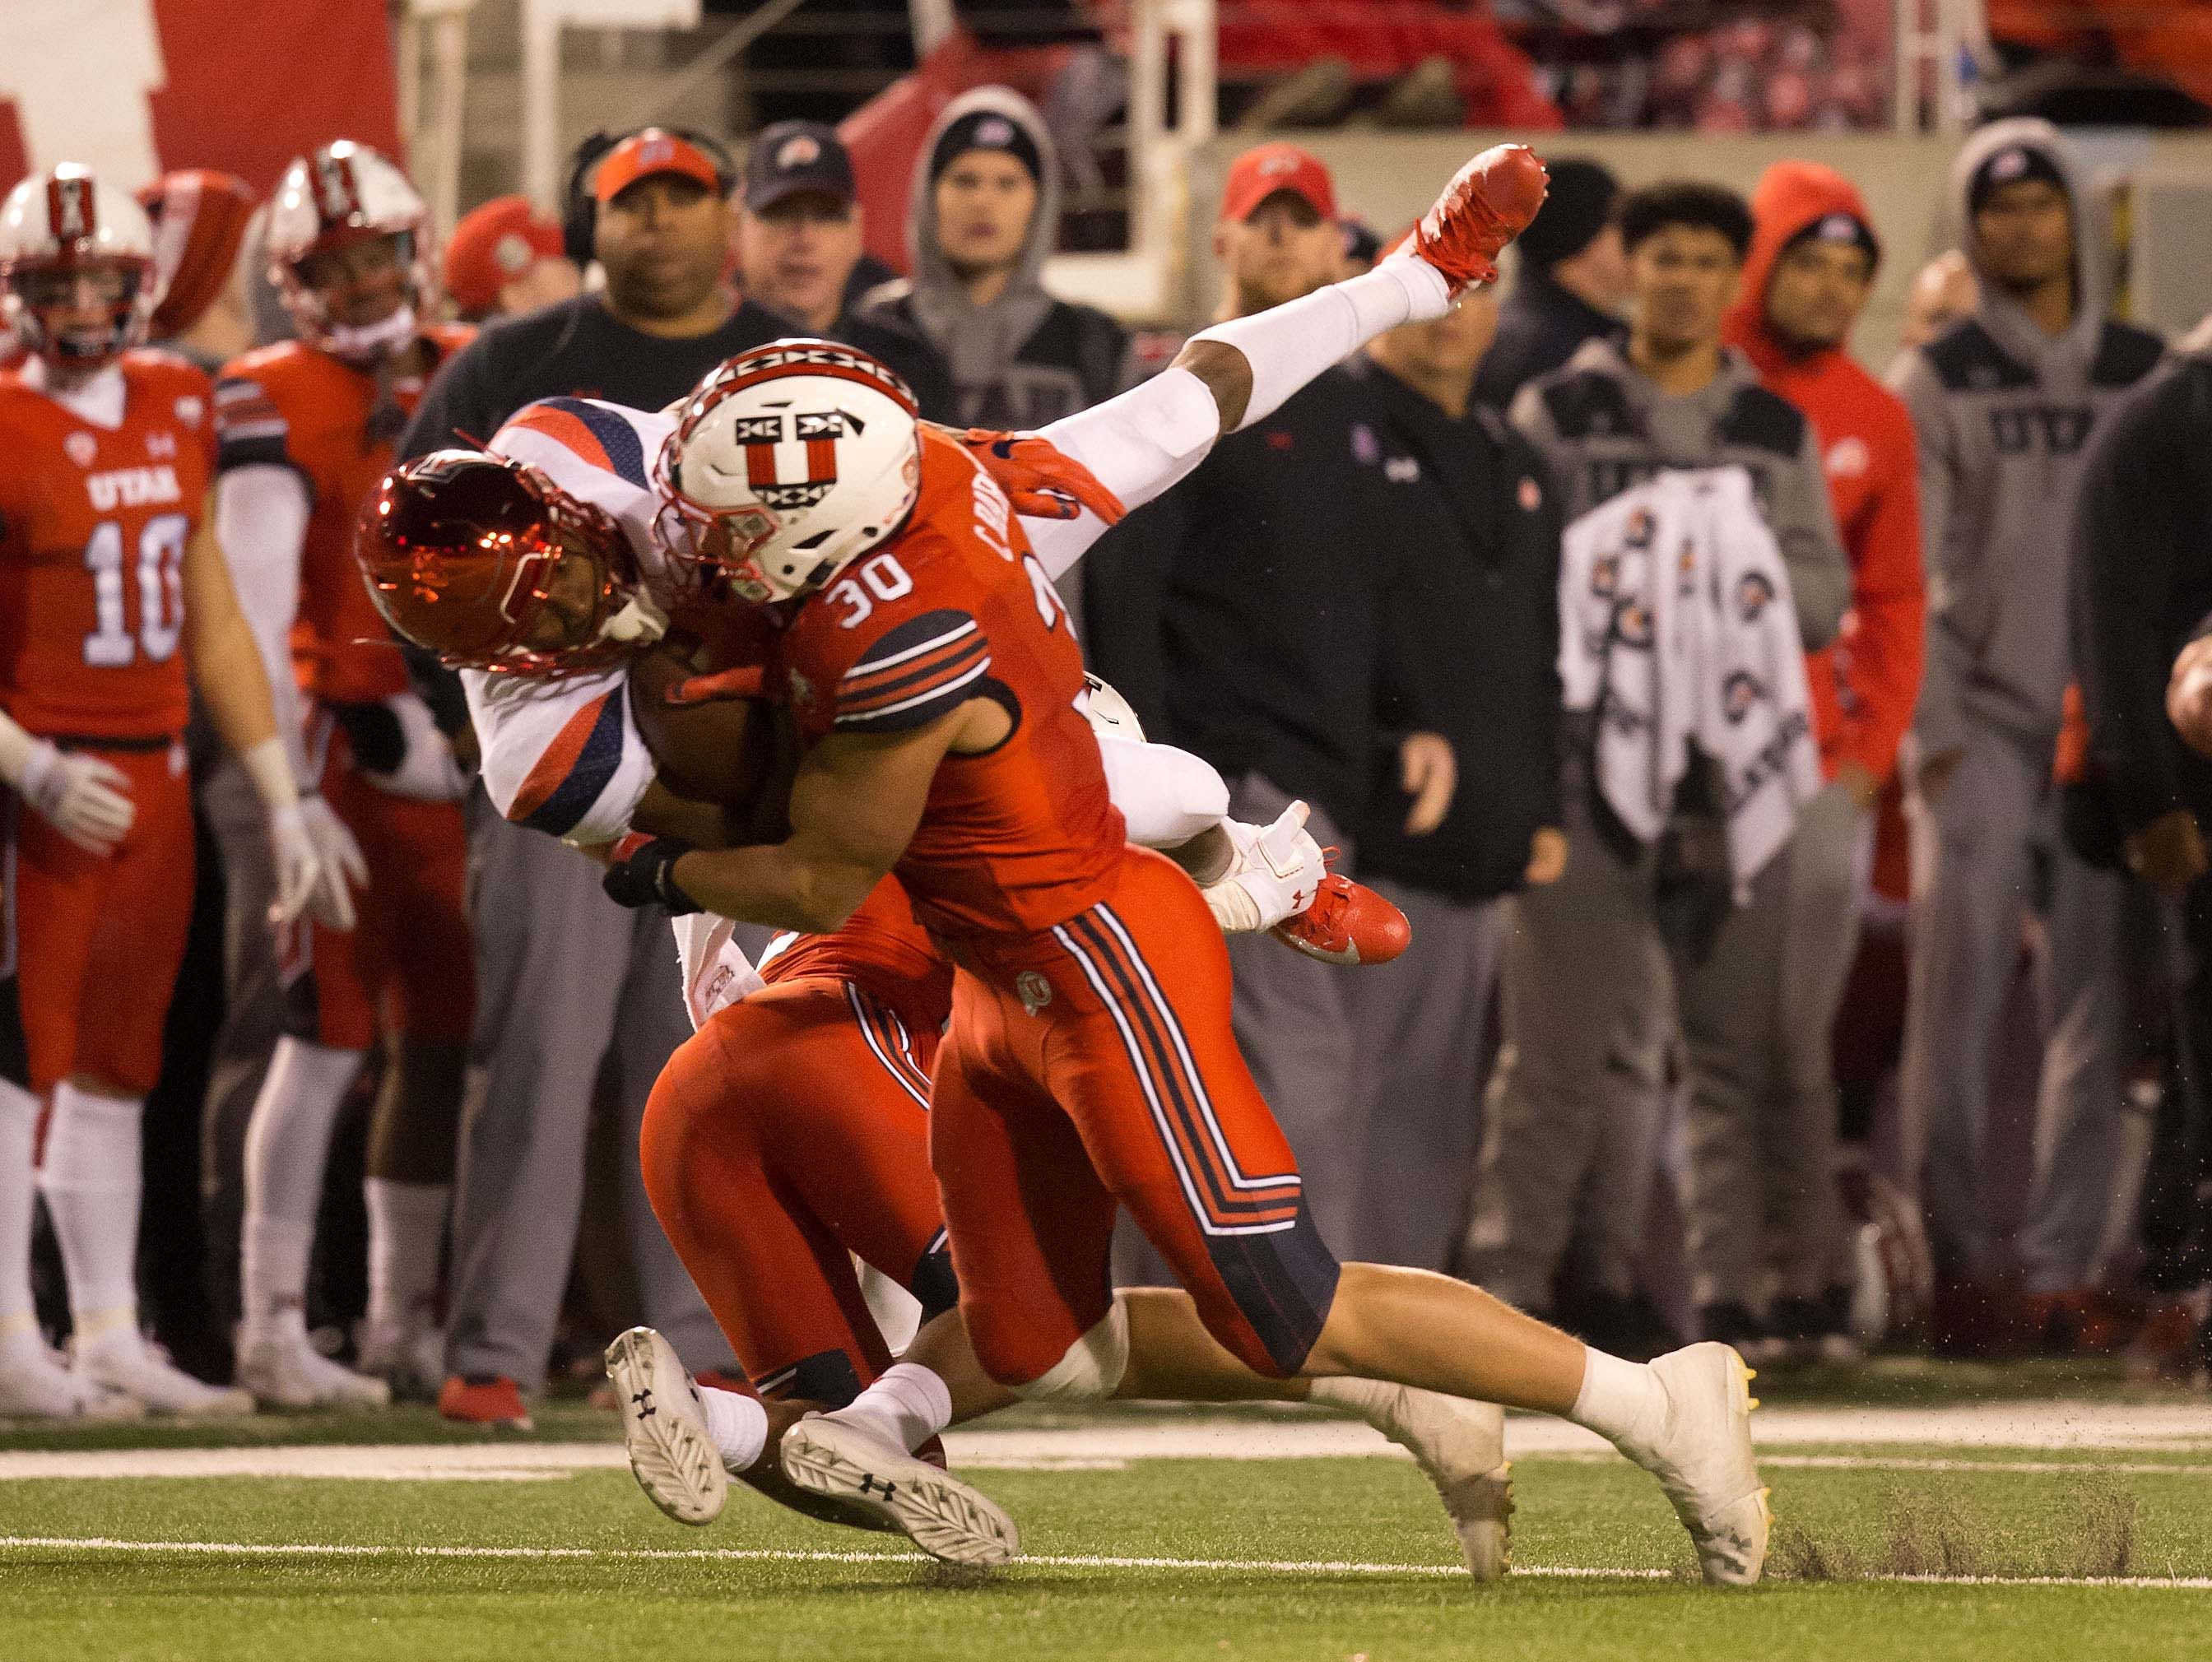 Arizona Wildcats wide receiver Devaughn Cooper (7) is tackled by Utah Utes defensive back Terrell Burgess (26) and linebacker Cody Barton (30) during the second half at Rice-Eccles Stadium.